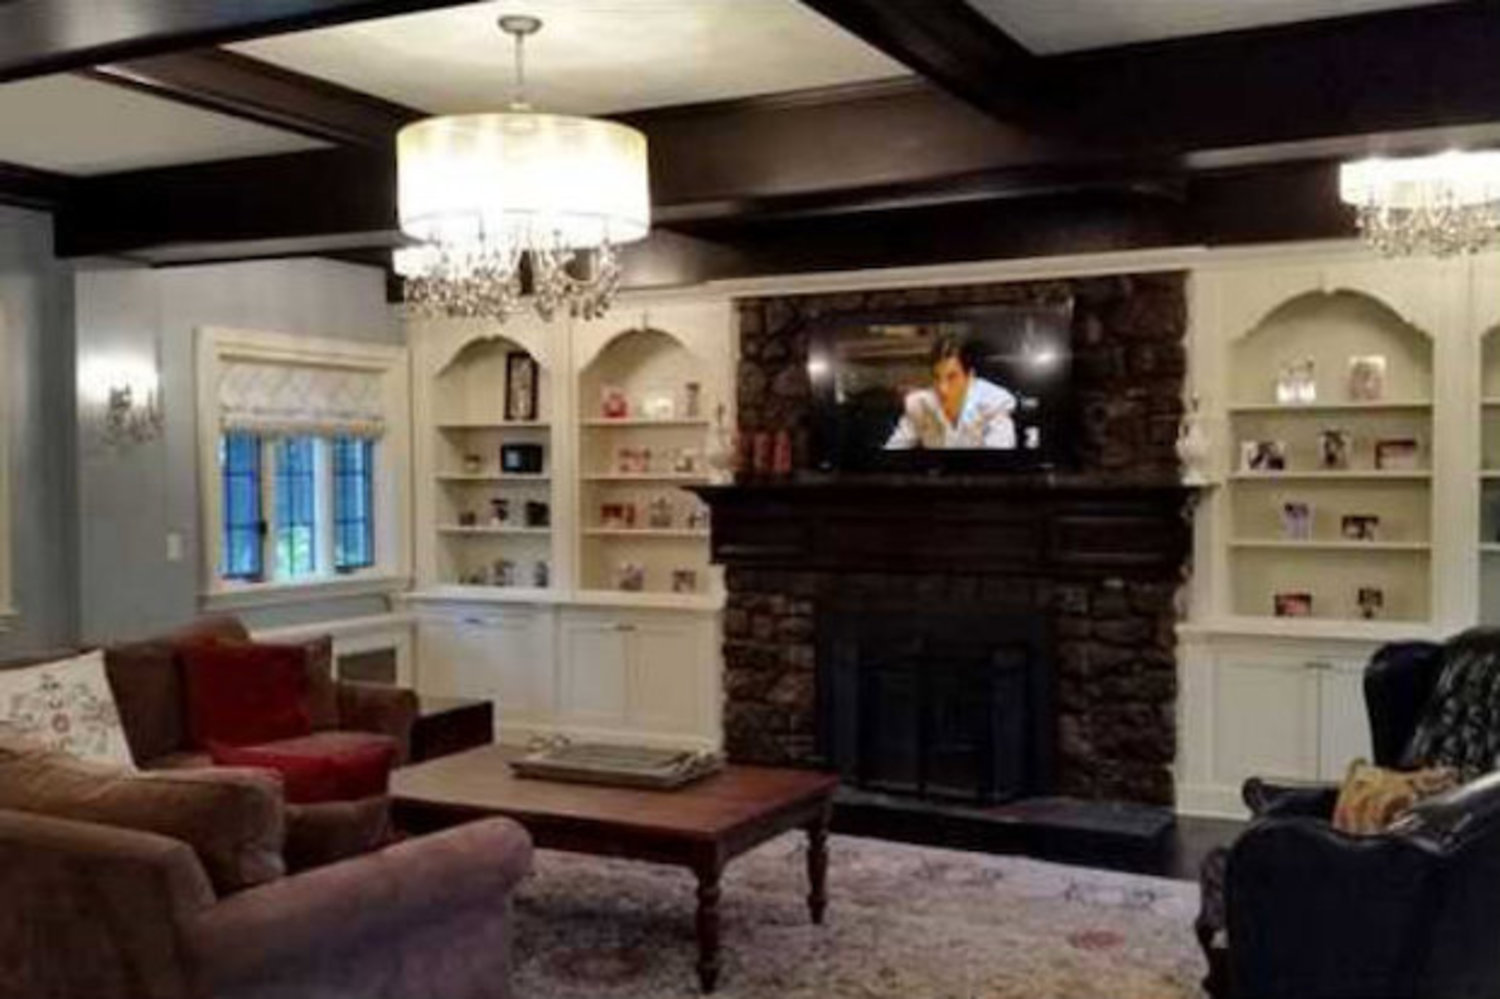 The interior of the home was gutted and remodeled by the new owners in 2012.